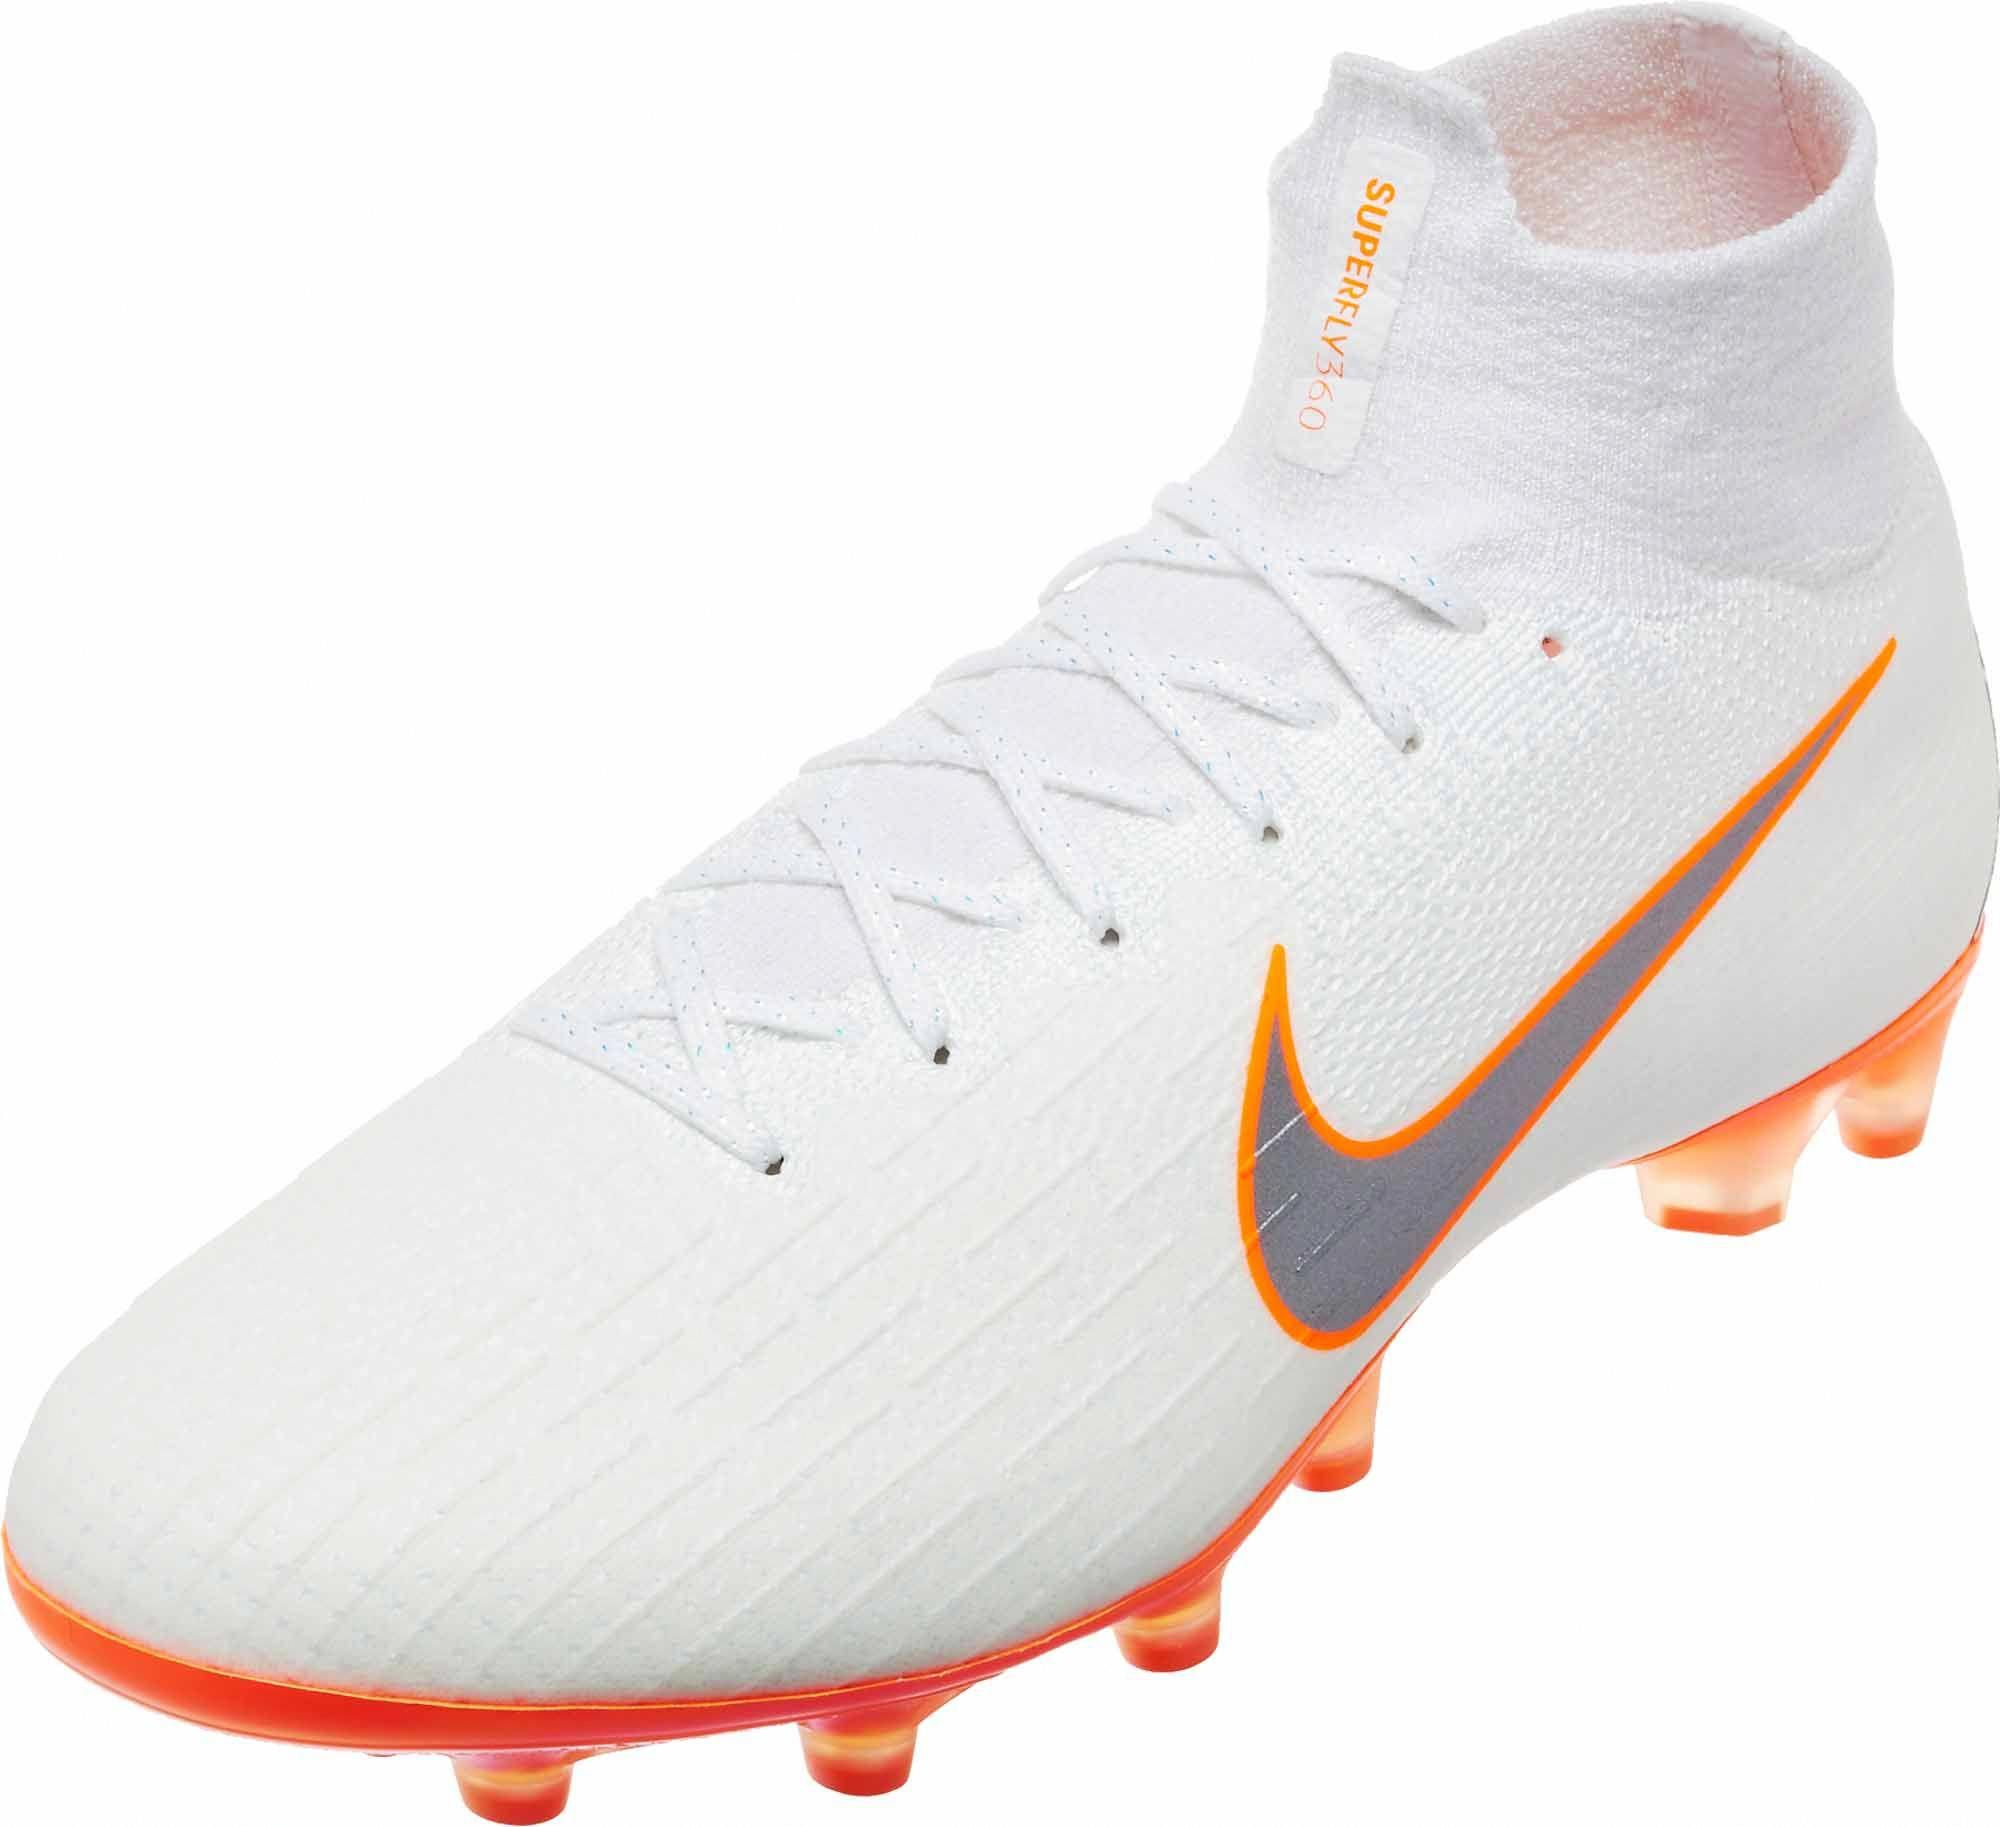 big sale 83199 e7bdf Just Do It World Cup pack Nike Mercurial Superfly Elite 6 ...